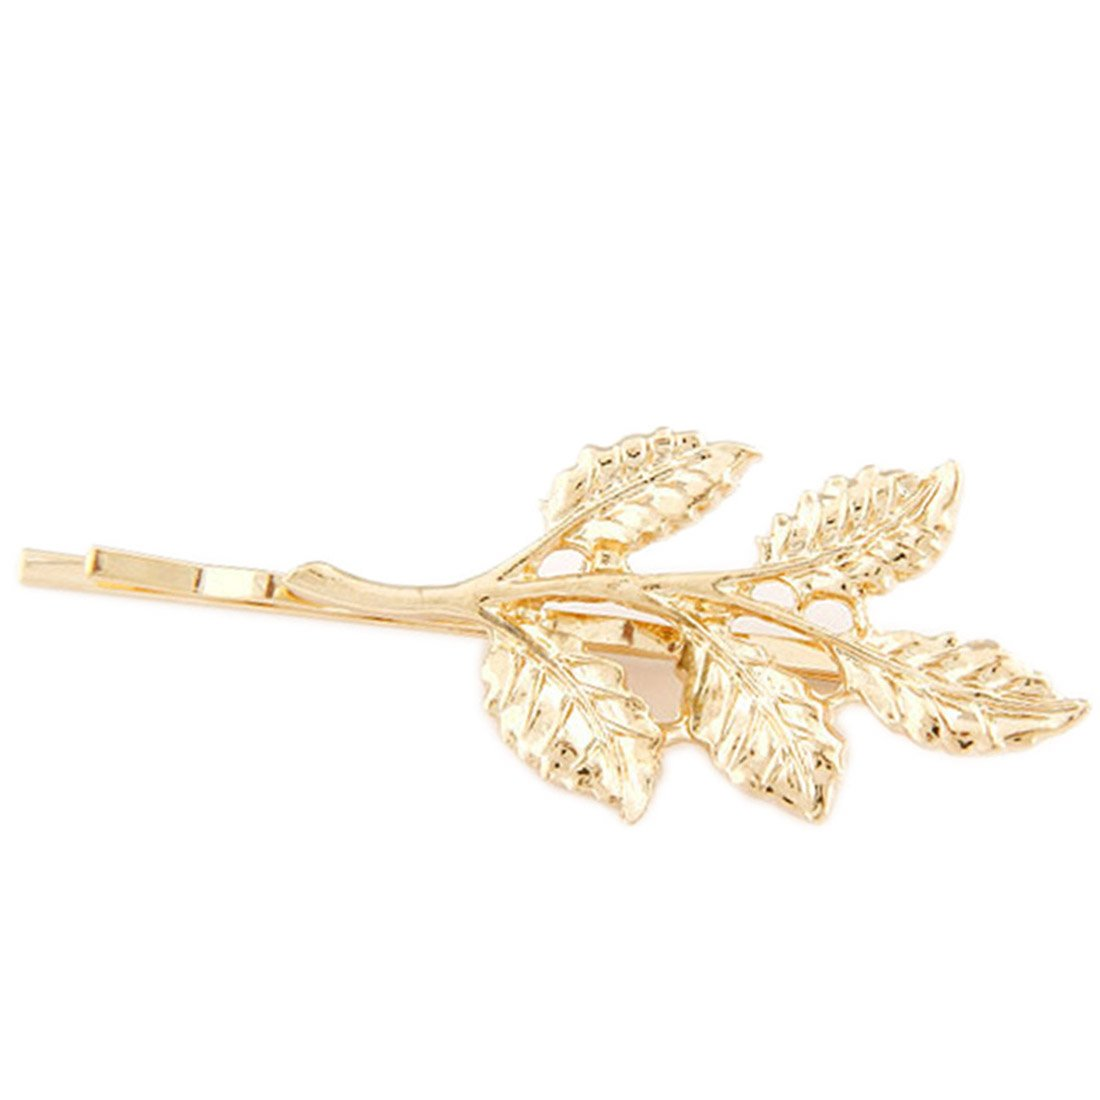 Fashion Lovely hojas Golden Metal Punk Hairpin Hair Pins Clips para las mujeres decoració n tres hojas CY-Buity